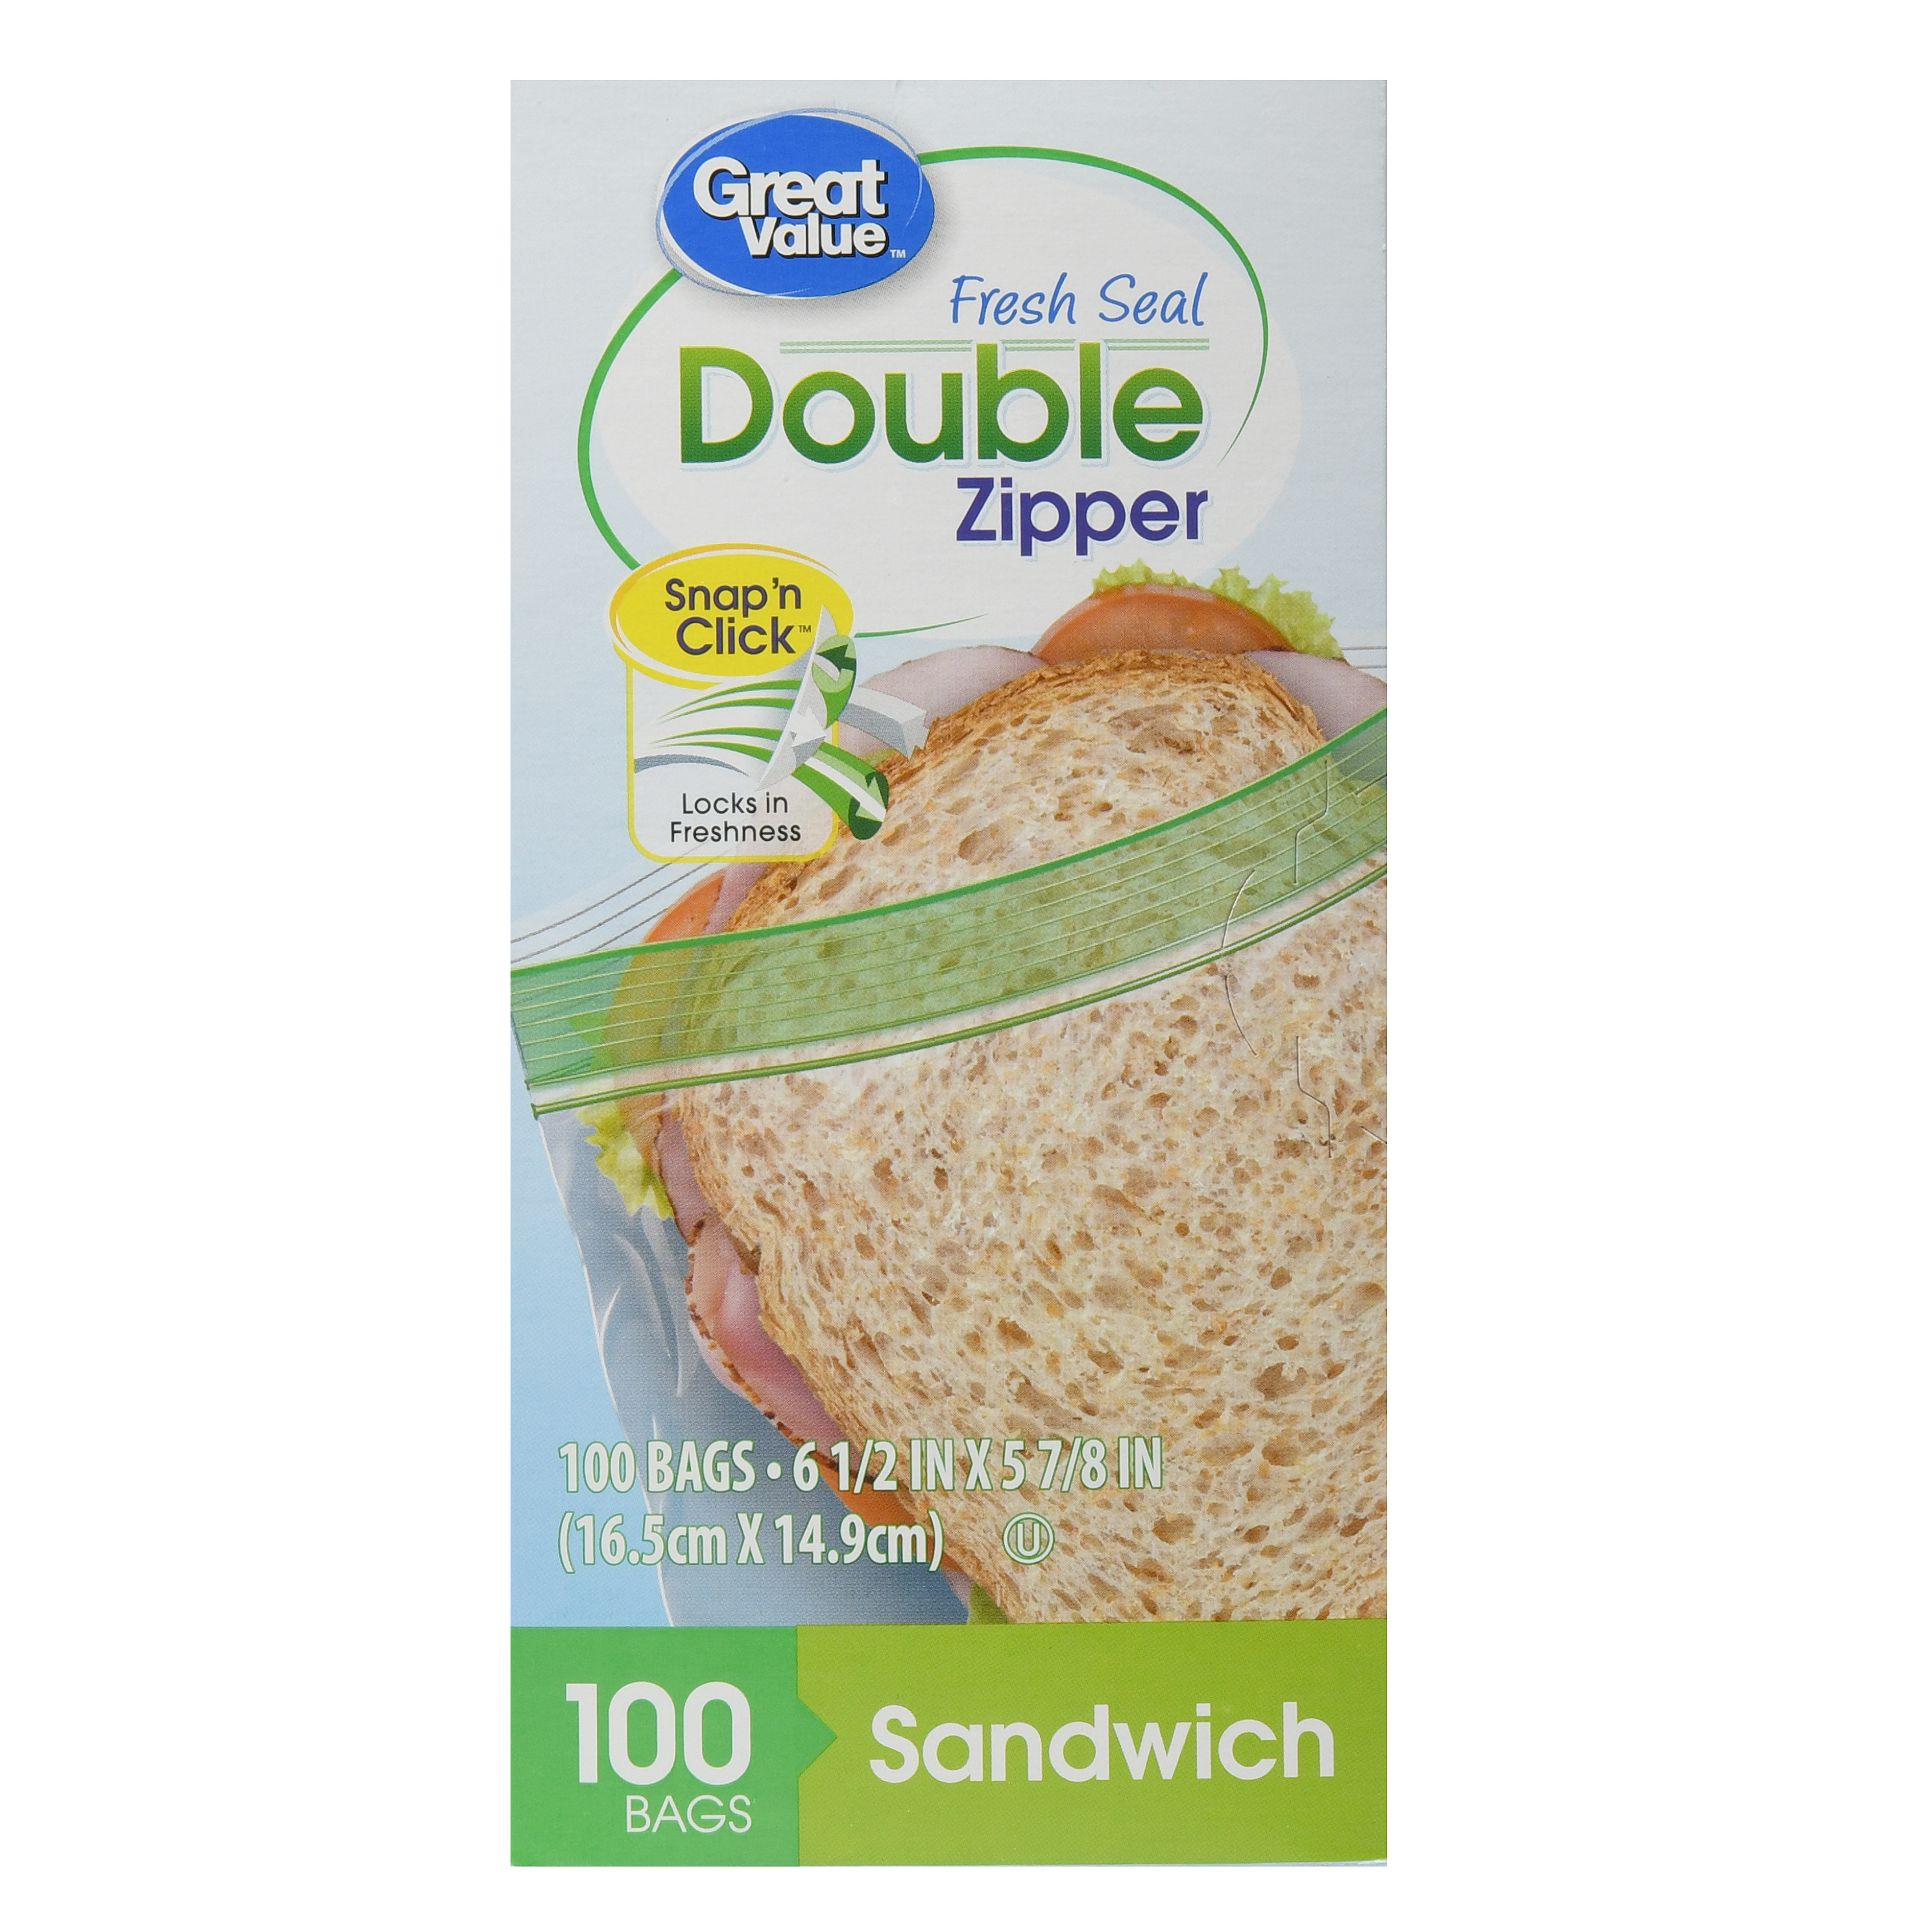 Great Value Double Zipper Sandwich Bags, 100 Count by Wal-Mart Stores, Inc.